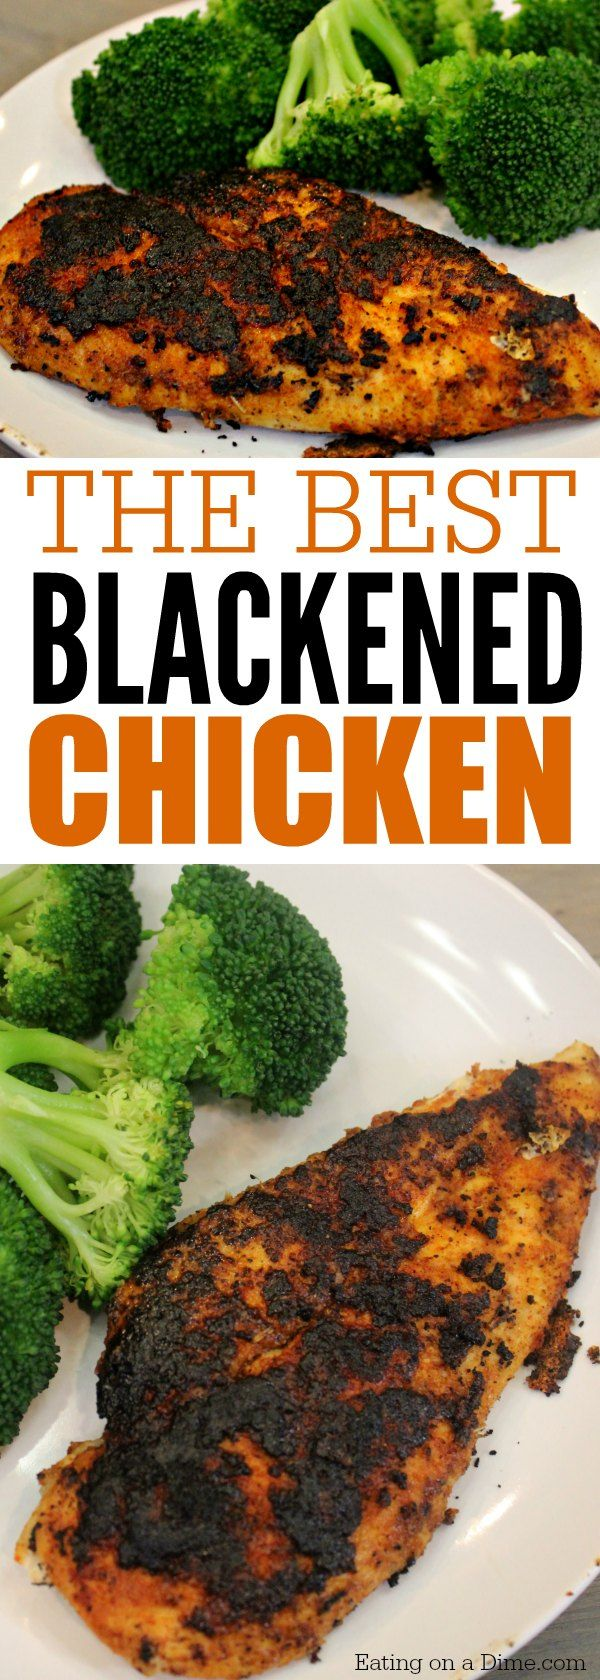 This is the best blackened chicken recipe. This quick and easy recipe is ready in 15 minutes from start to finish making it a quick dinner idea.